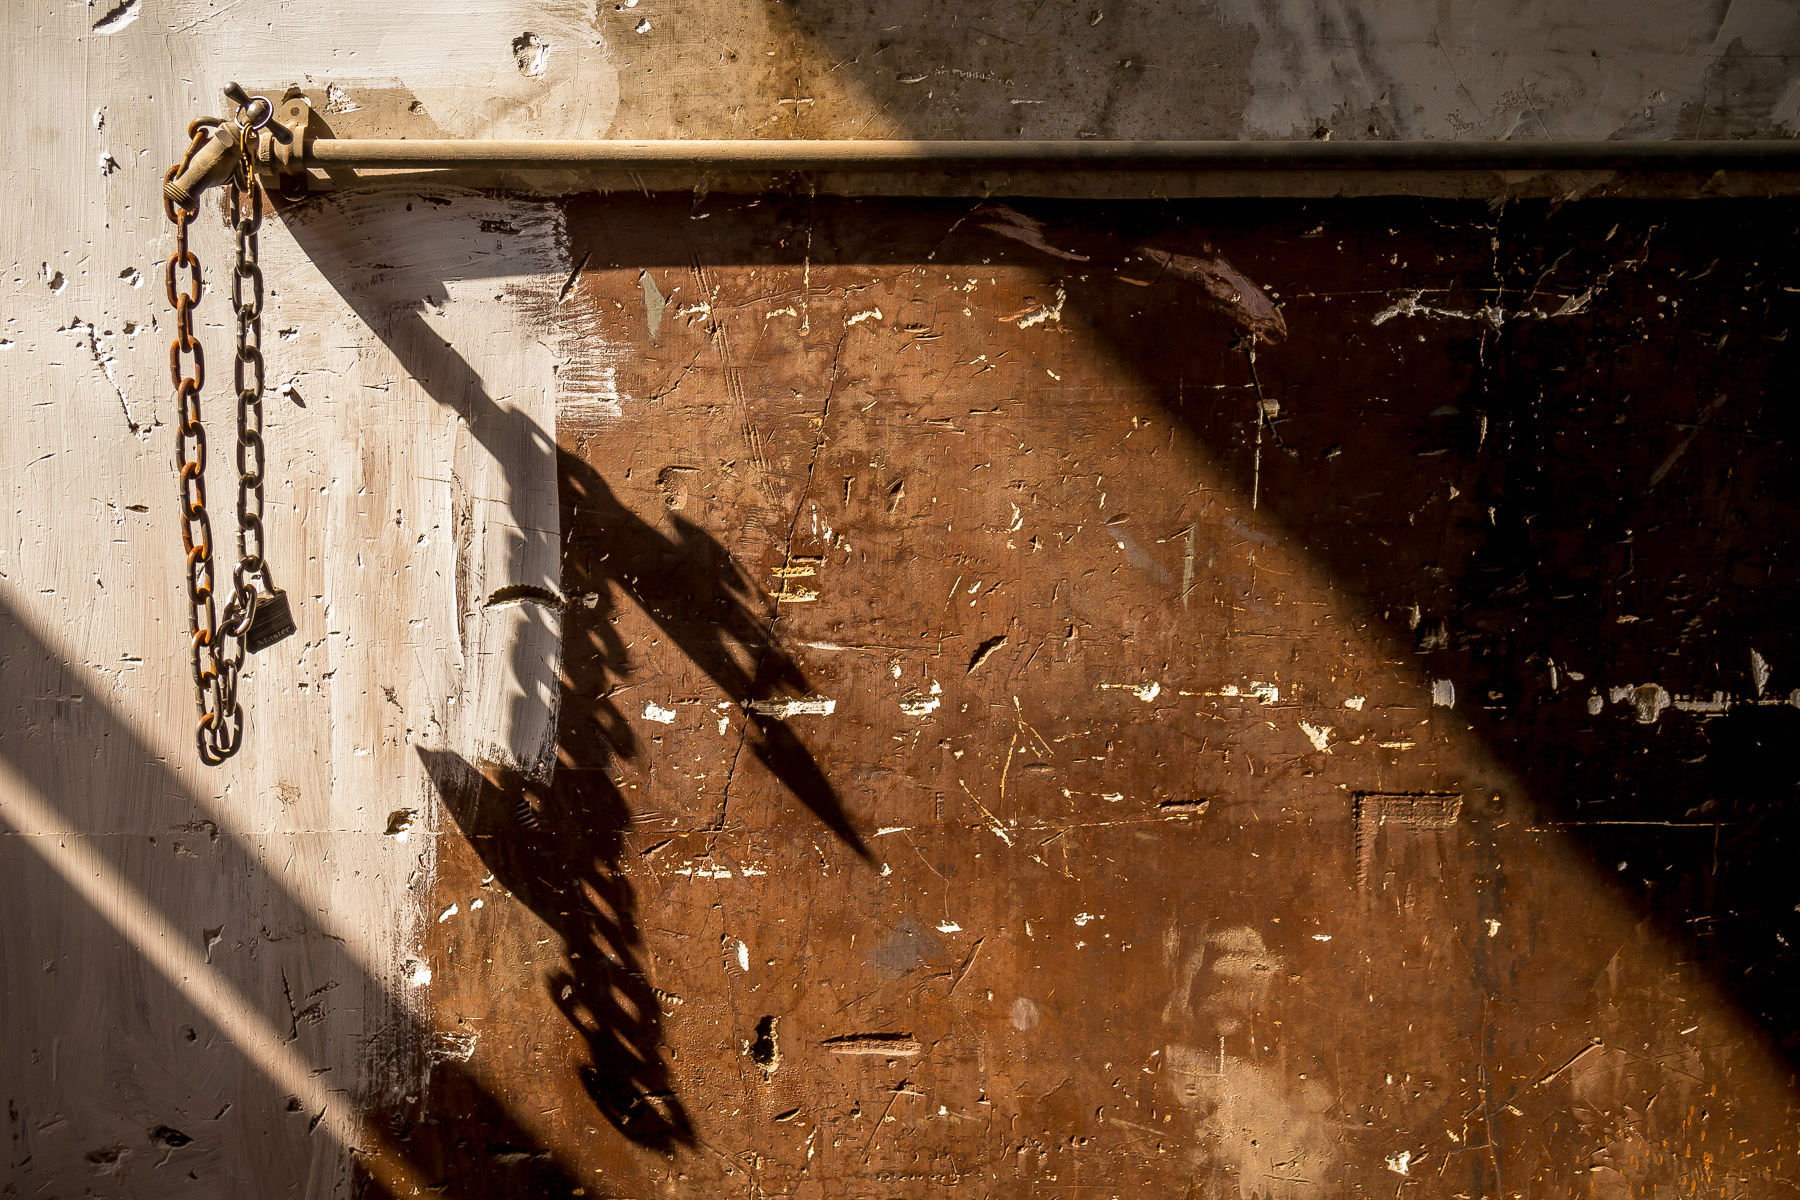 A rusting chain hanging from a pipe casts a shadow inside the abandoned Long Machine Tool Company building in Deep Ellum, Dallas, Texas.